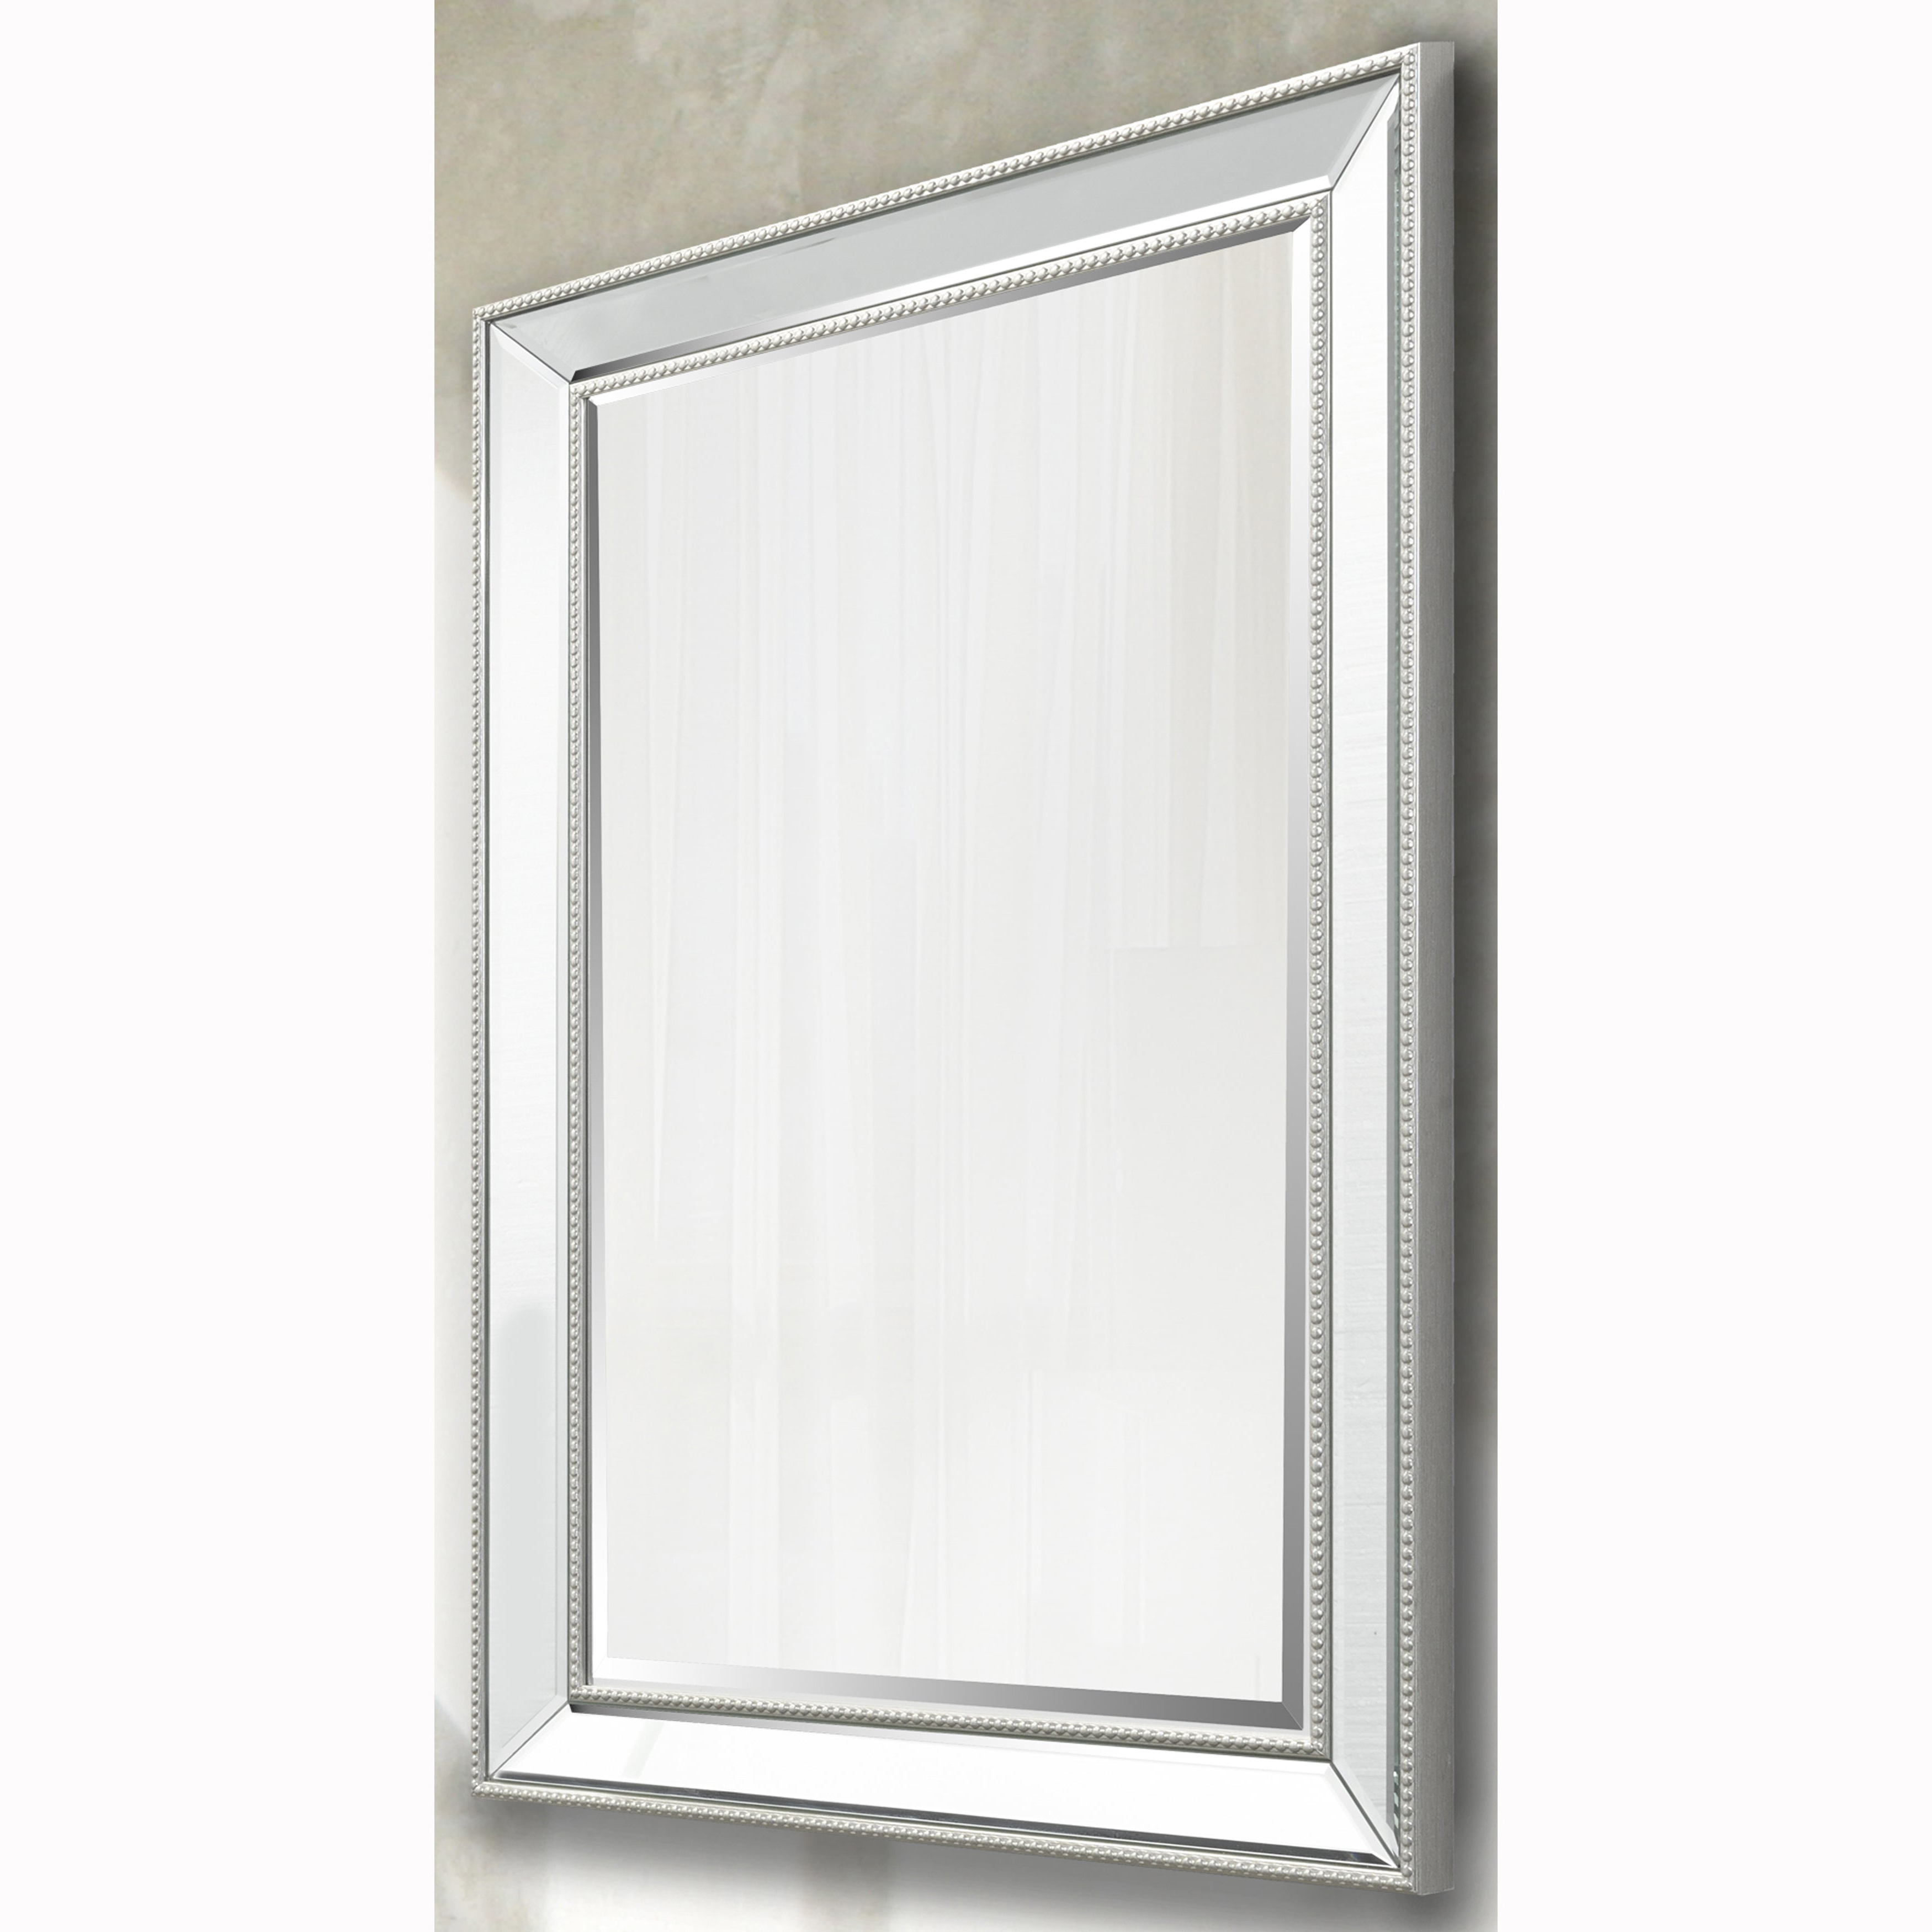 Silver Beaded Wall Mirrors With Regard To Newest Silver Beaded Rectangular Vanity Wall Mirror And Beveled Mirror Frame (View 5 of 20)